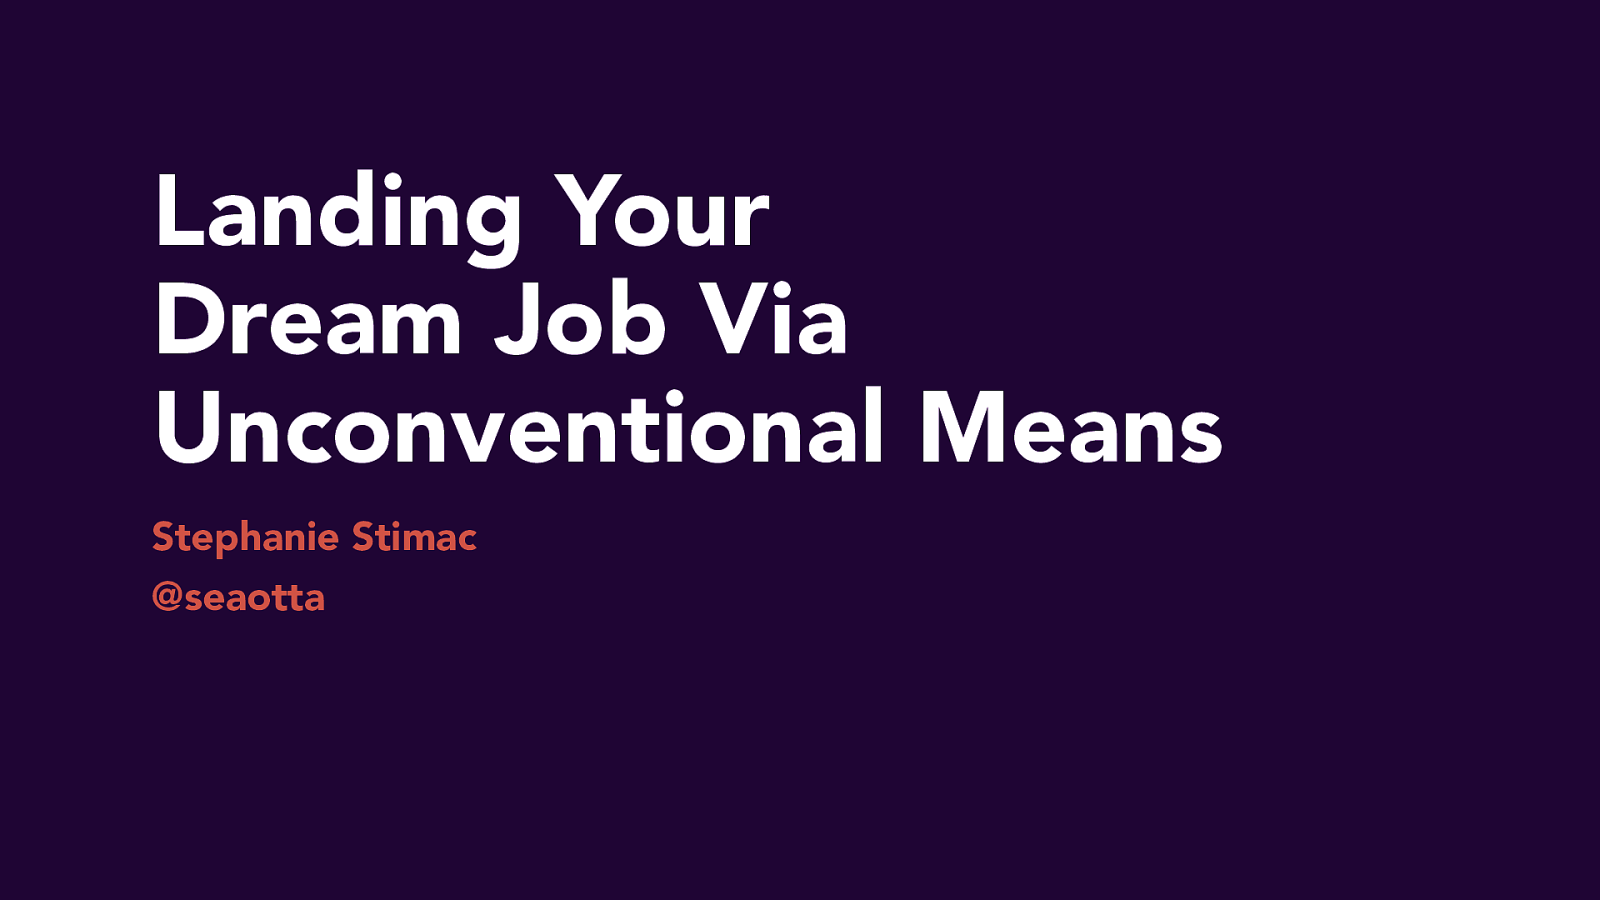 Landing Your Dream Job Via Unconventional Means